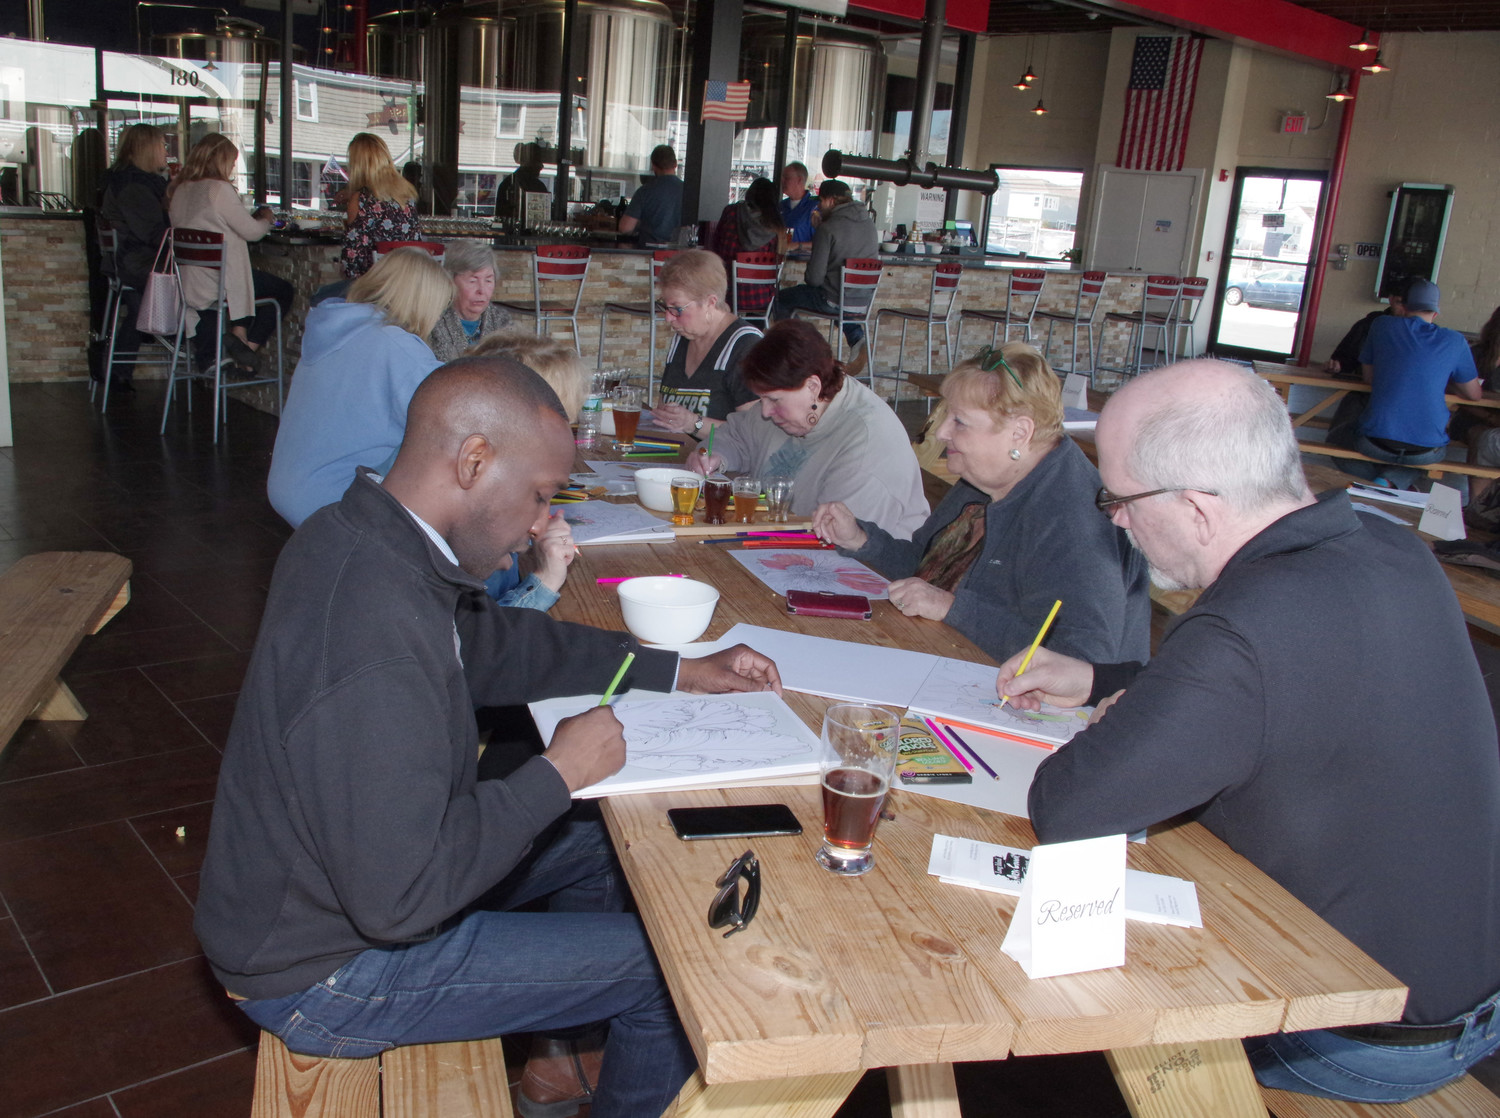 Long Island Arts Council board members colored and drank at BrewSa Brewery during a fundraiser held on Sunday.